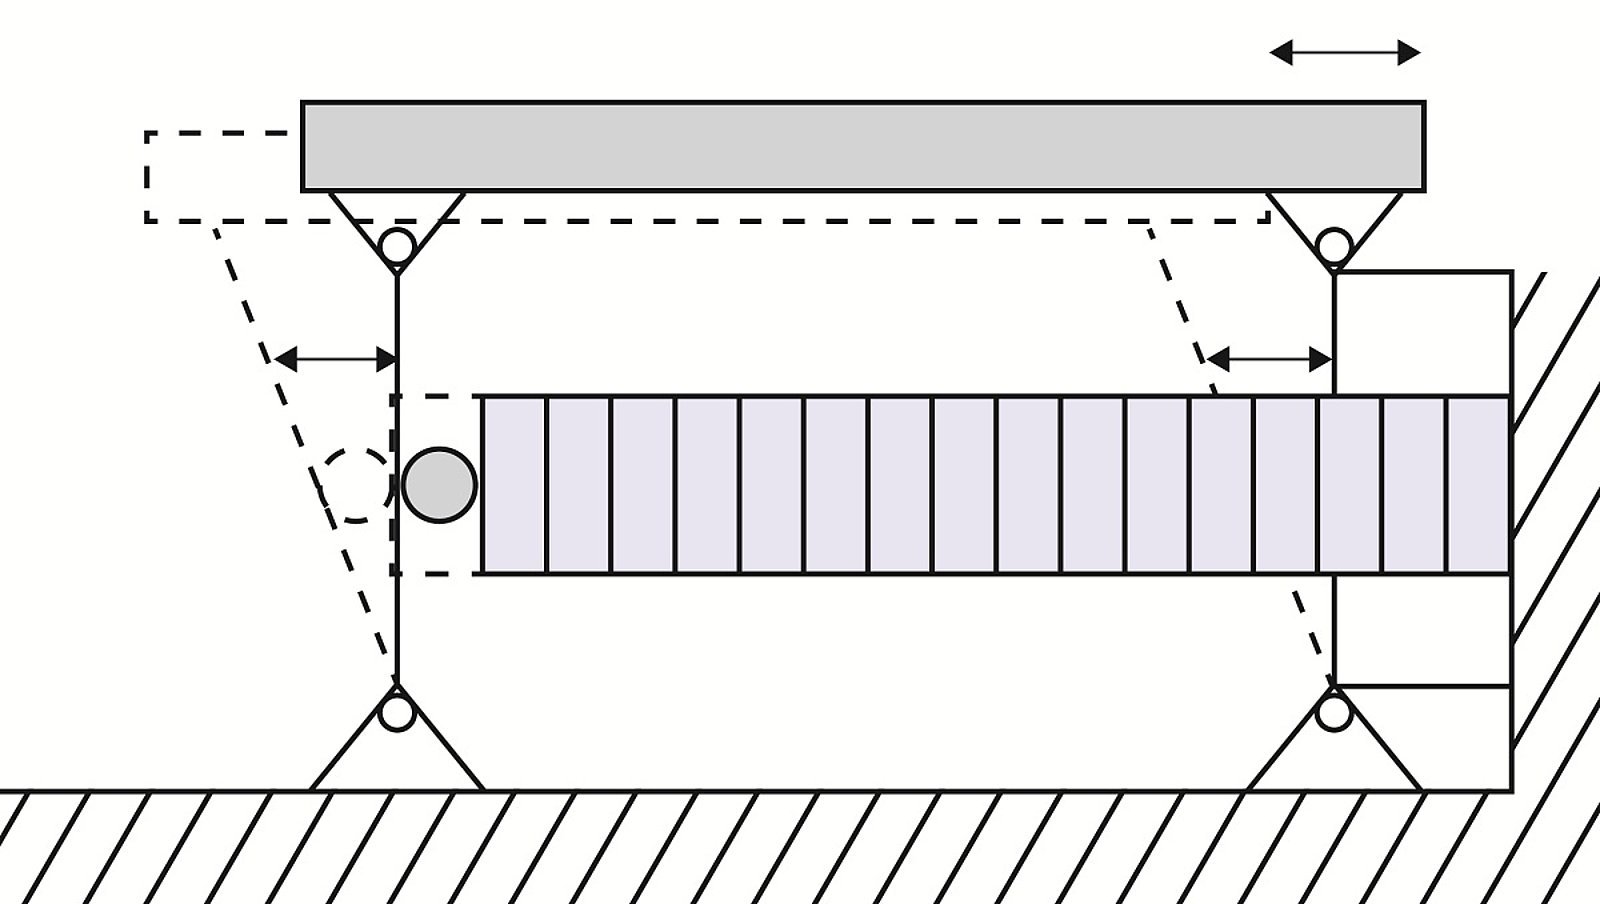 piezo actuators with and without guiding